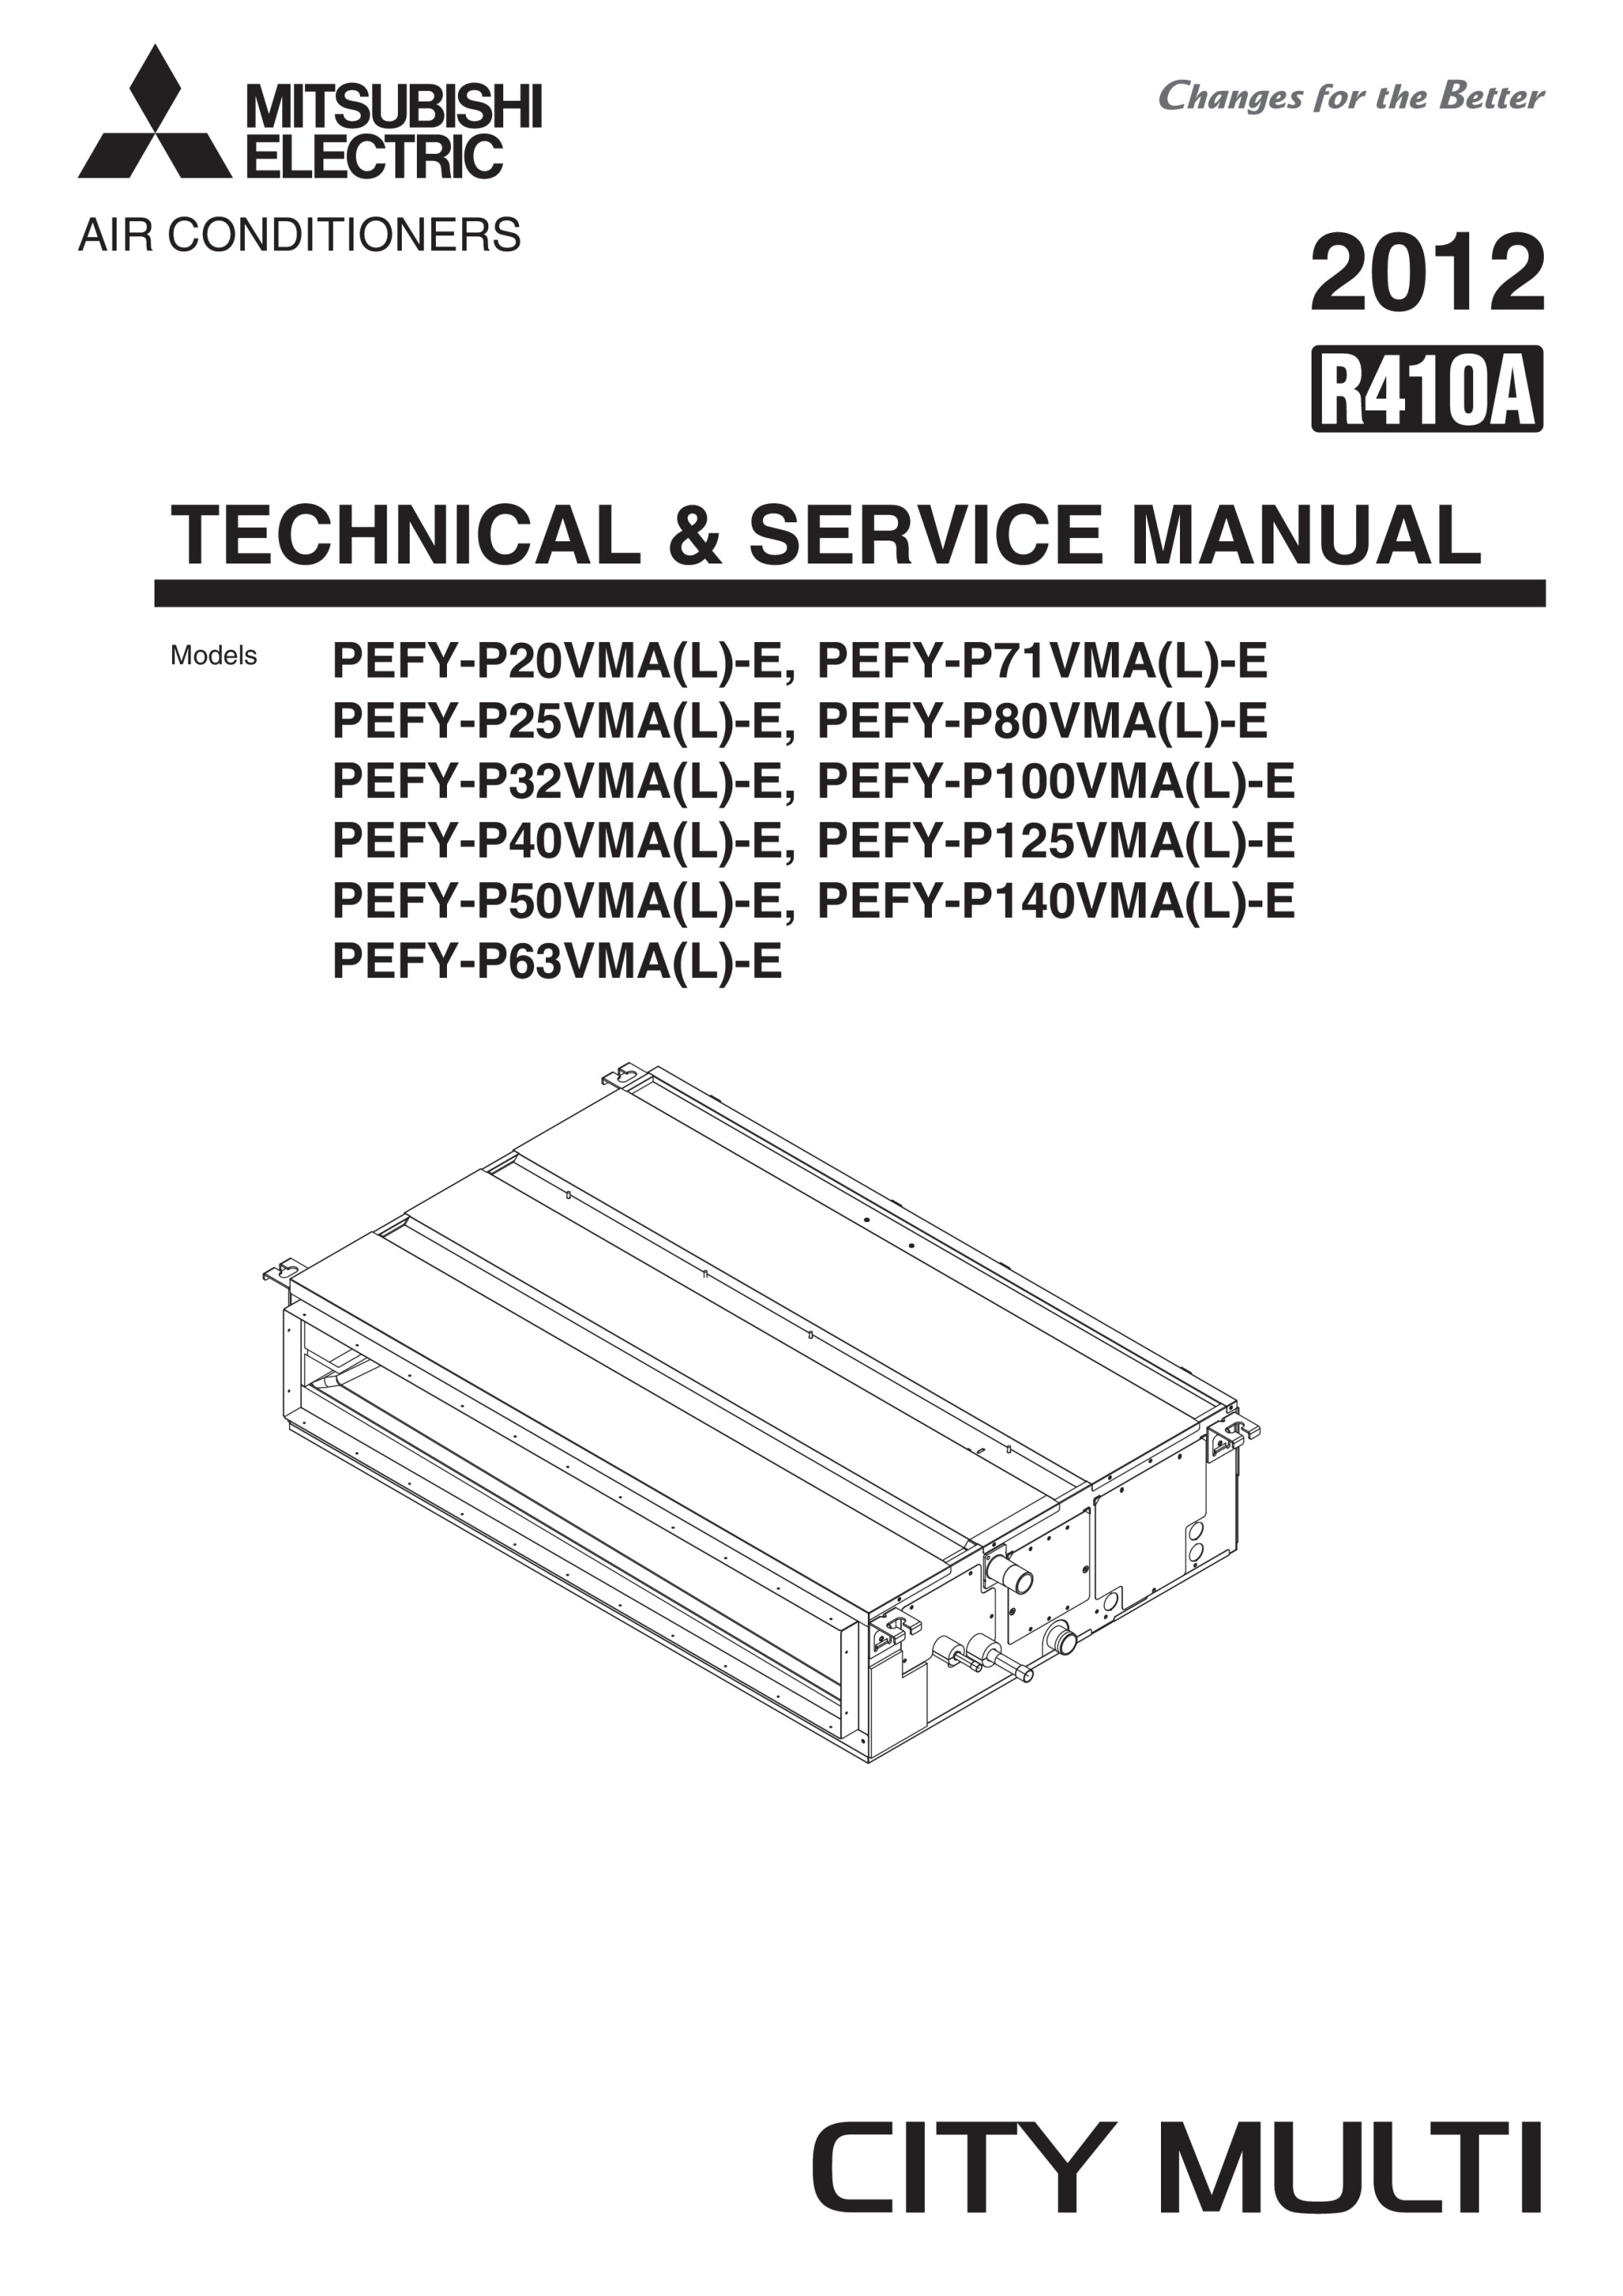 pefy p20 125vma e service manual hwe0812b mitsubishi electric rh library mitsubishielectric co uk City Multi Mitsubishi Air Conditioners City Multi Mitsubishi Air Conditioners